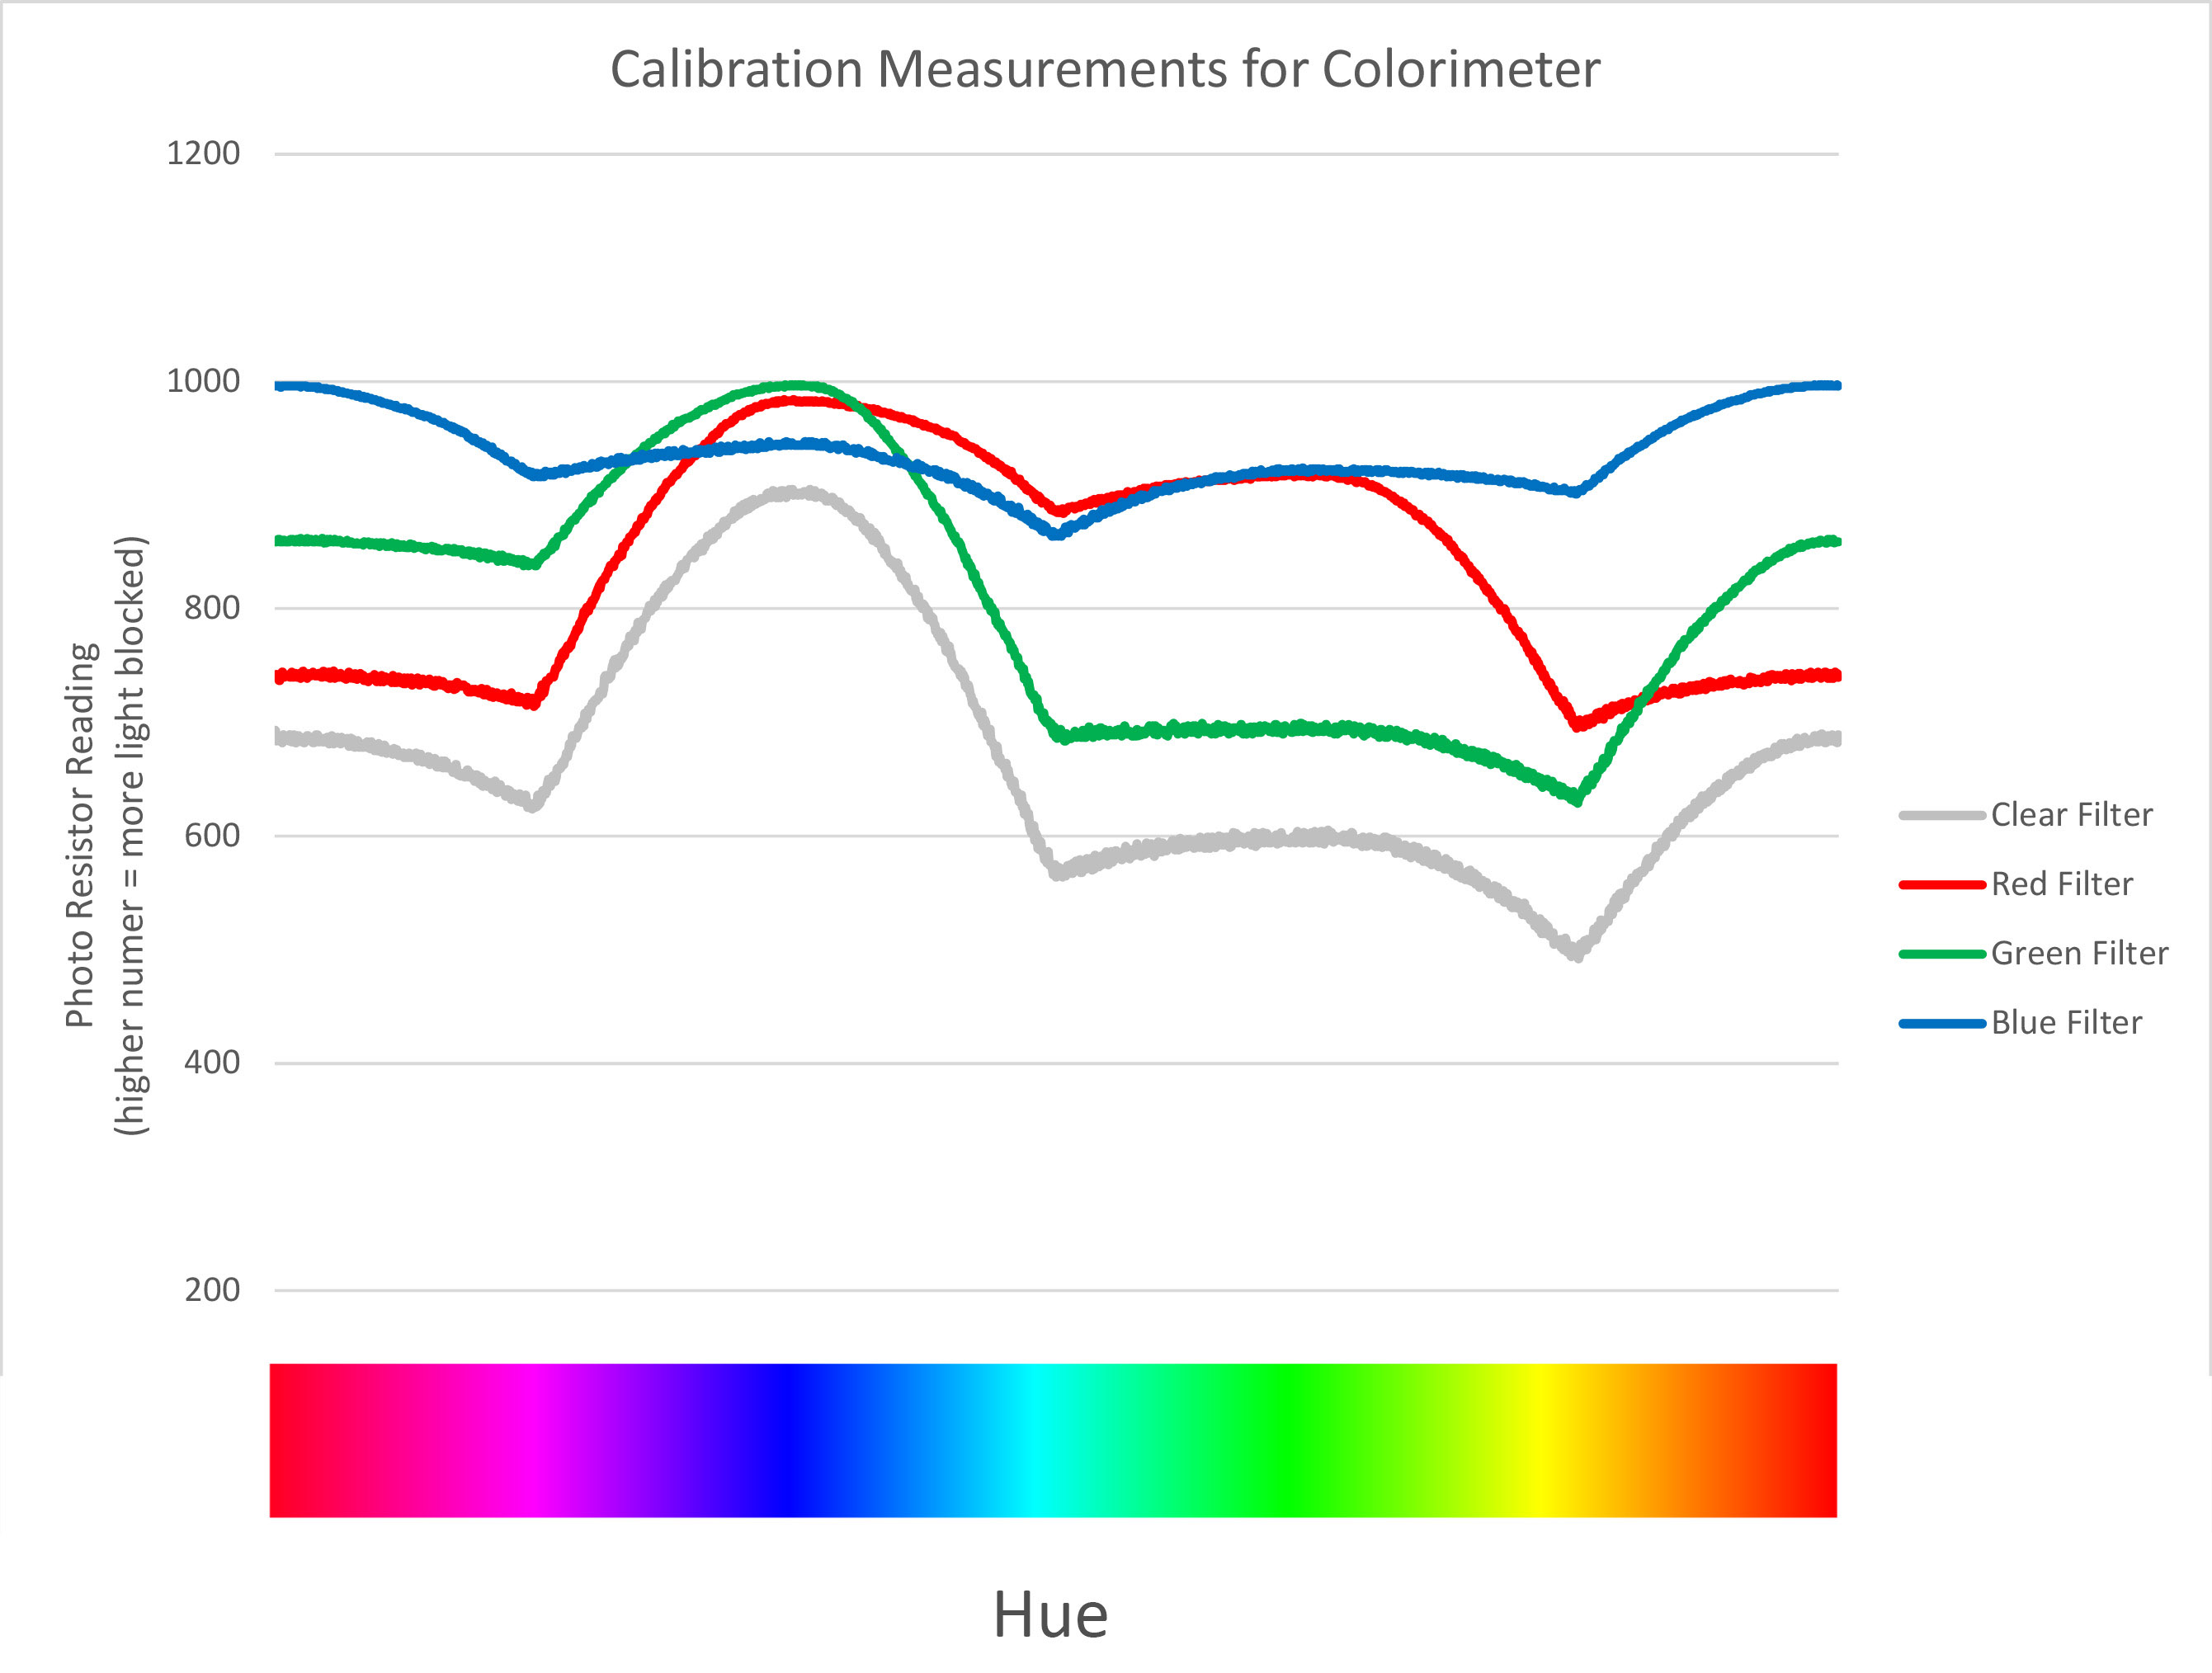 Graph of Color Calibration Measurements